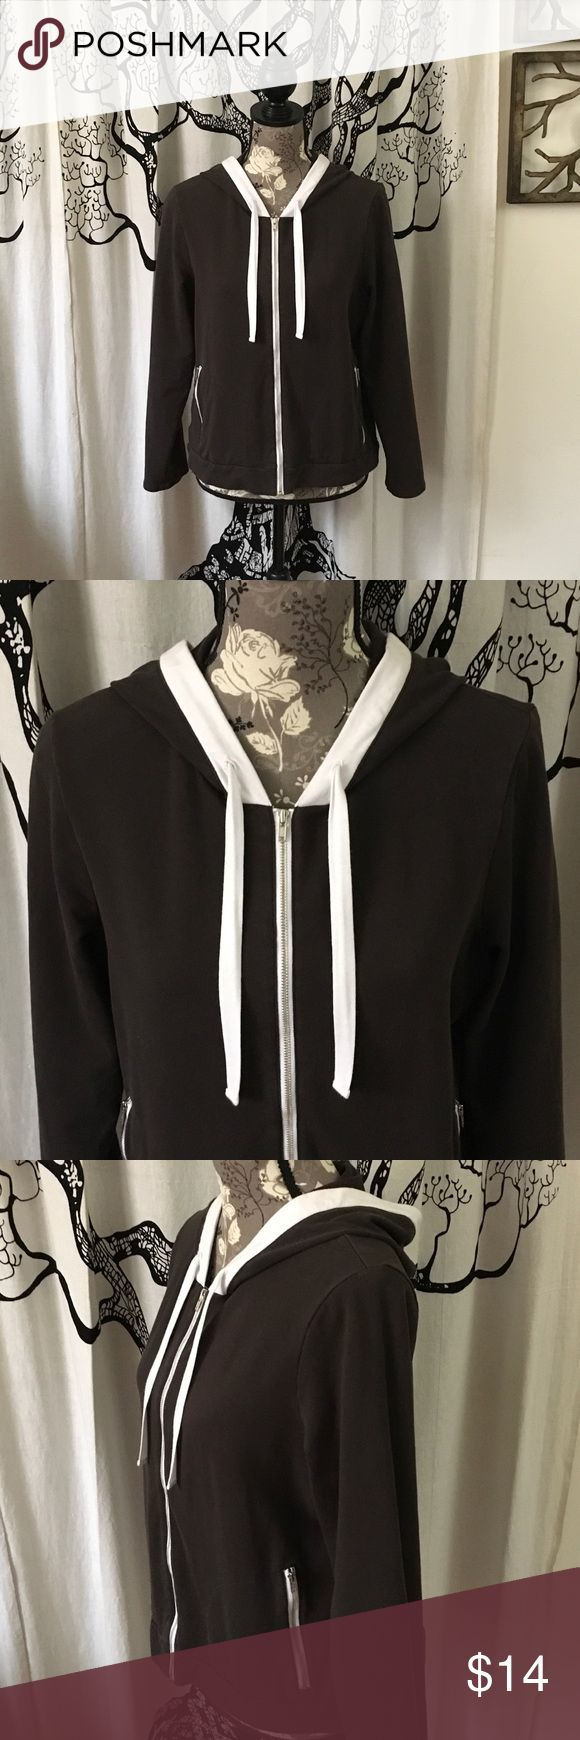 """NWOT Ann Taylor Loft Full Zip Hoodie SZ XLP Super soft and stretchy hoodie from LOFT in dark brown with white trim. Full front zip plus zippered pockets. Drawstring hood. Perfect retail condition - never worn. 20"""" bust, 19"""" waist, 20"""" across the hem, and 22"""" length. This would work for non-petite women if you like your hoodies shorter. Super cute hoodie! LOFT Tops Sweatshirts & Hoodies"""